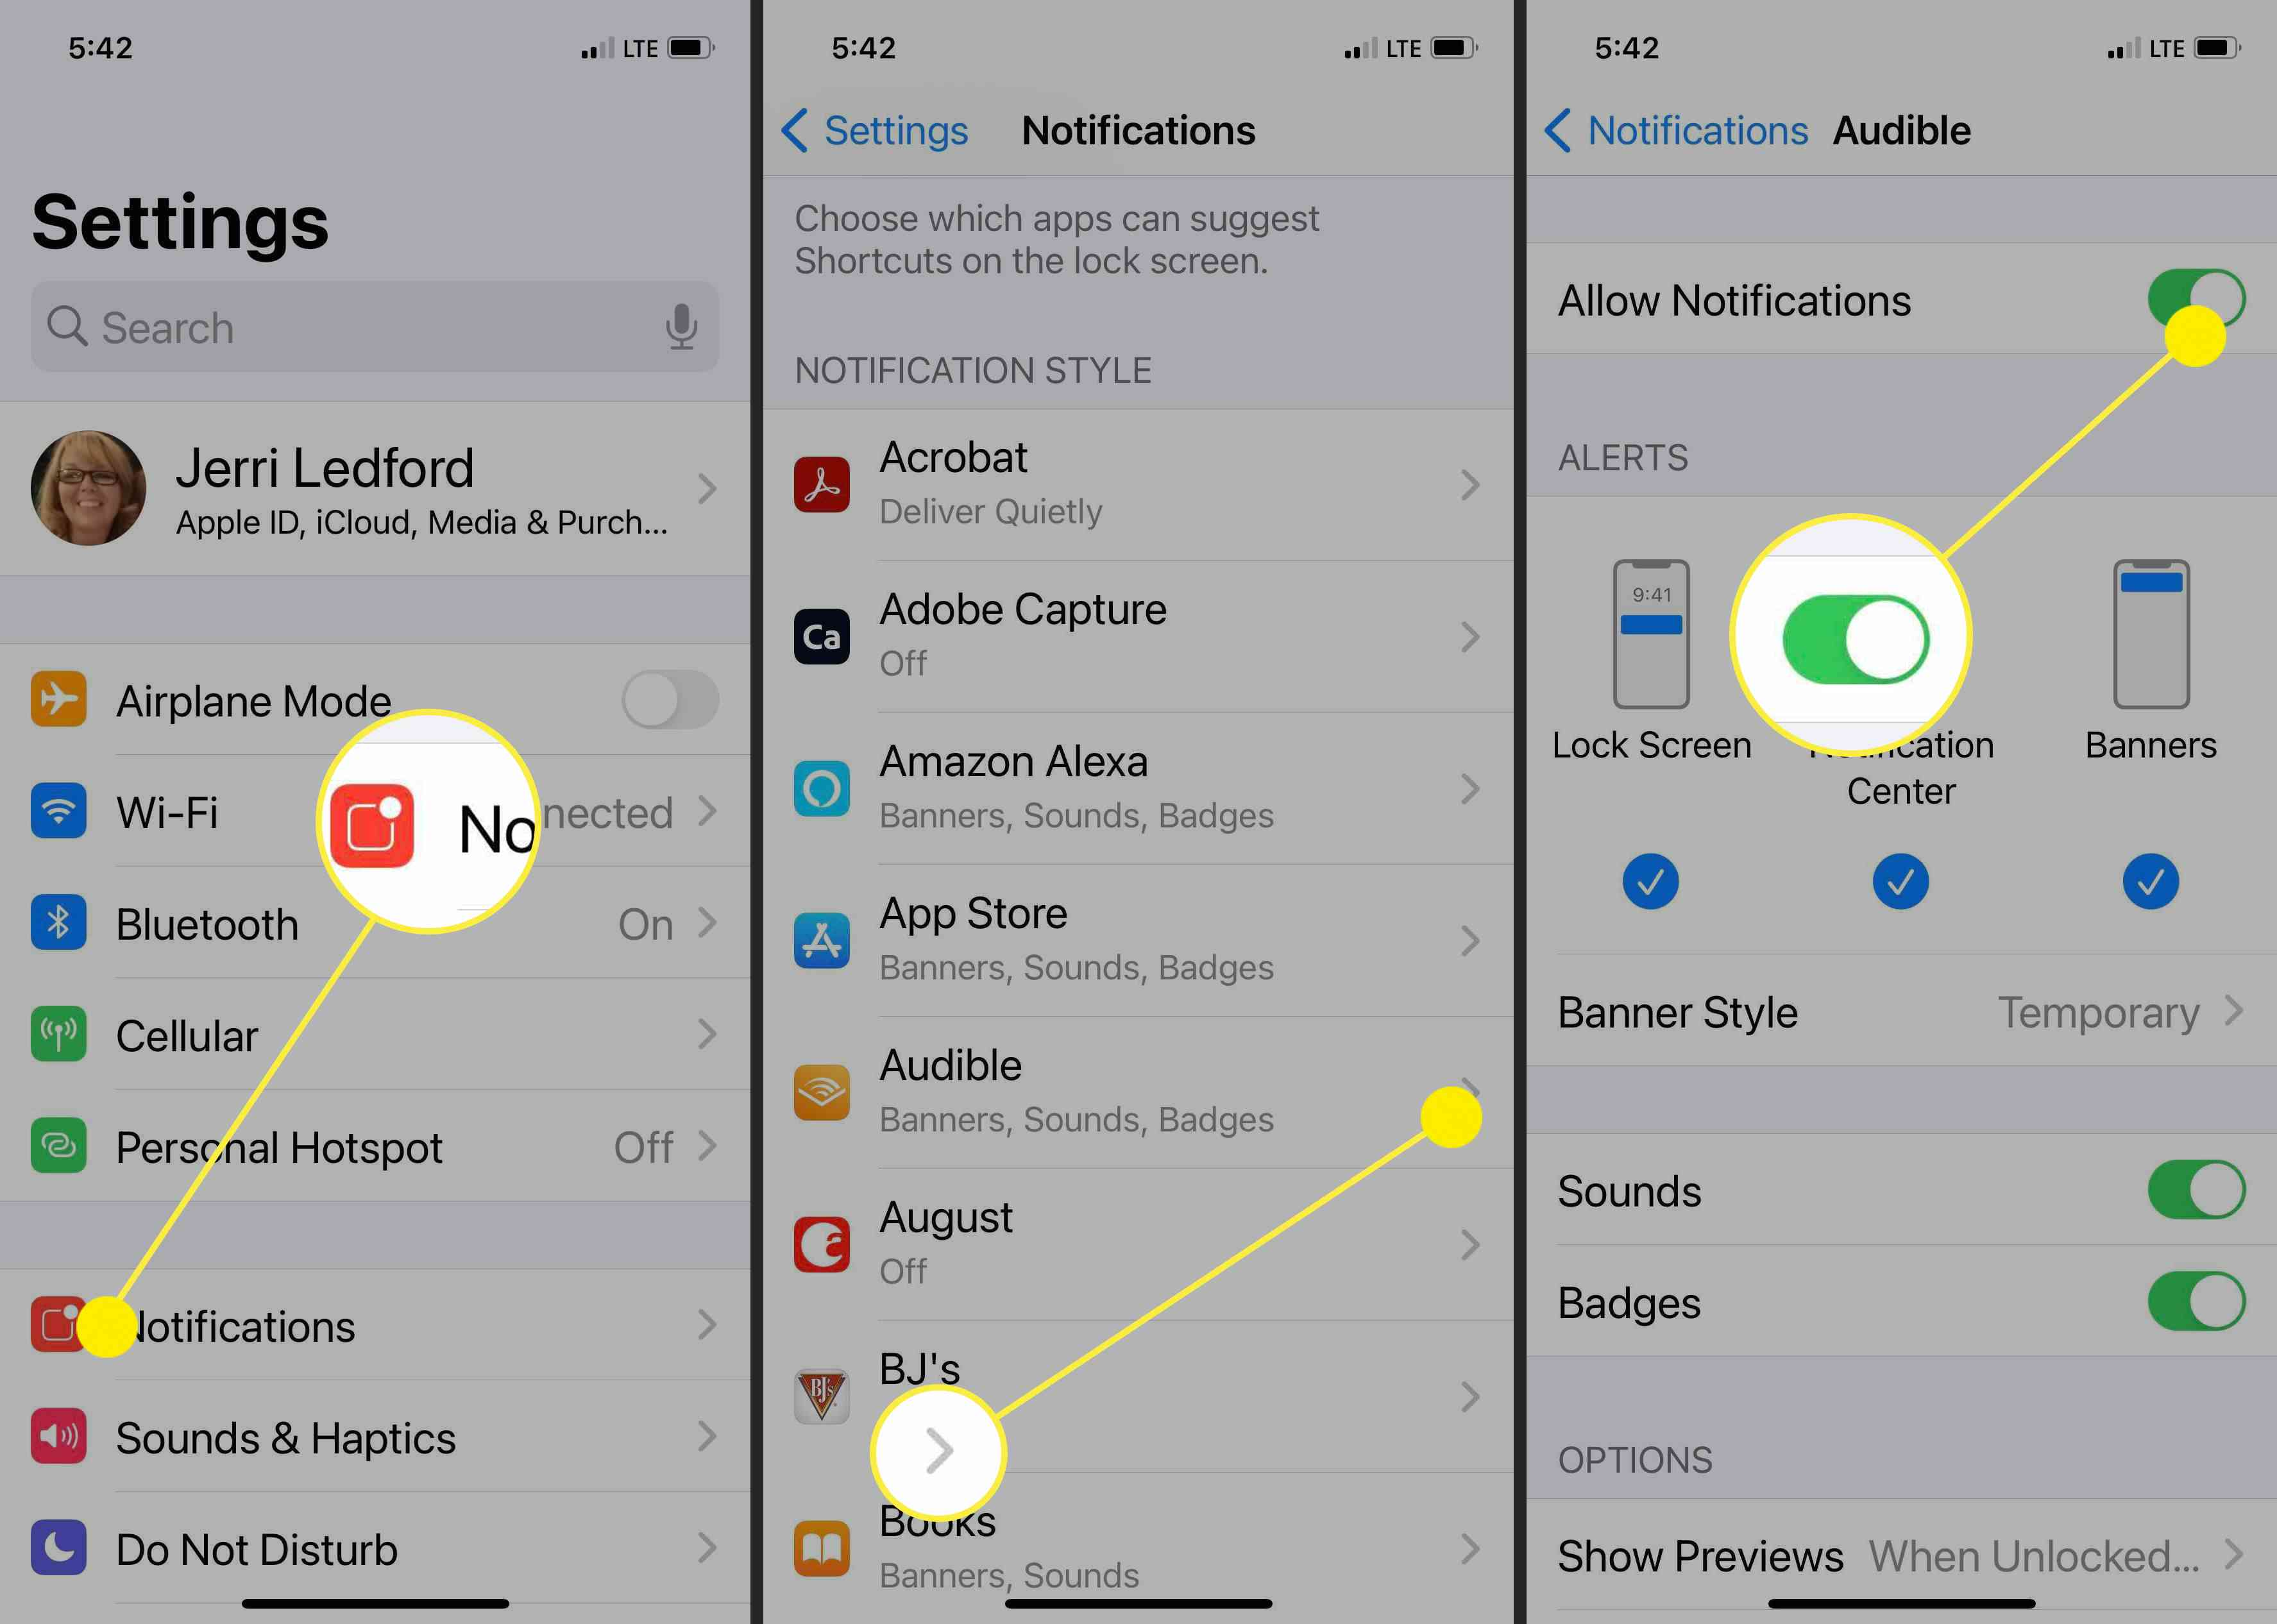 Screenshots showing how to adjust notifications on iPhone.